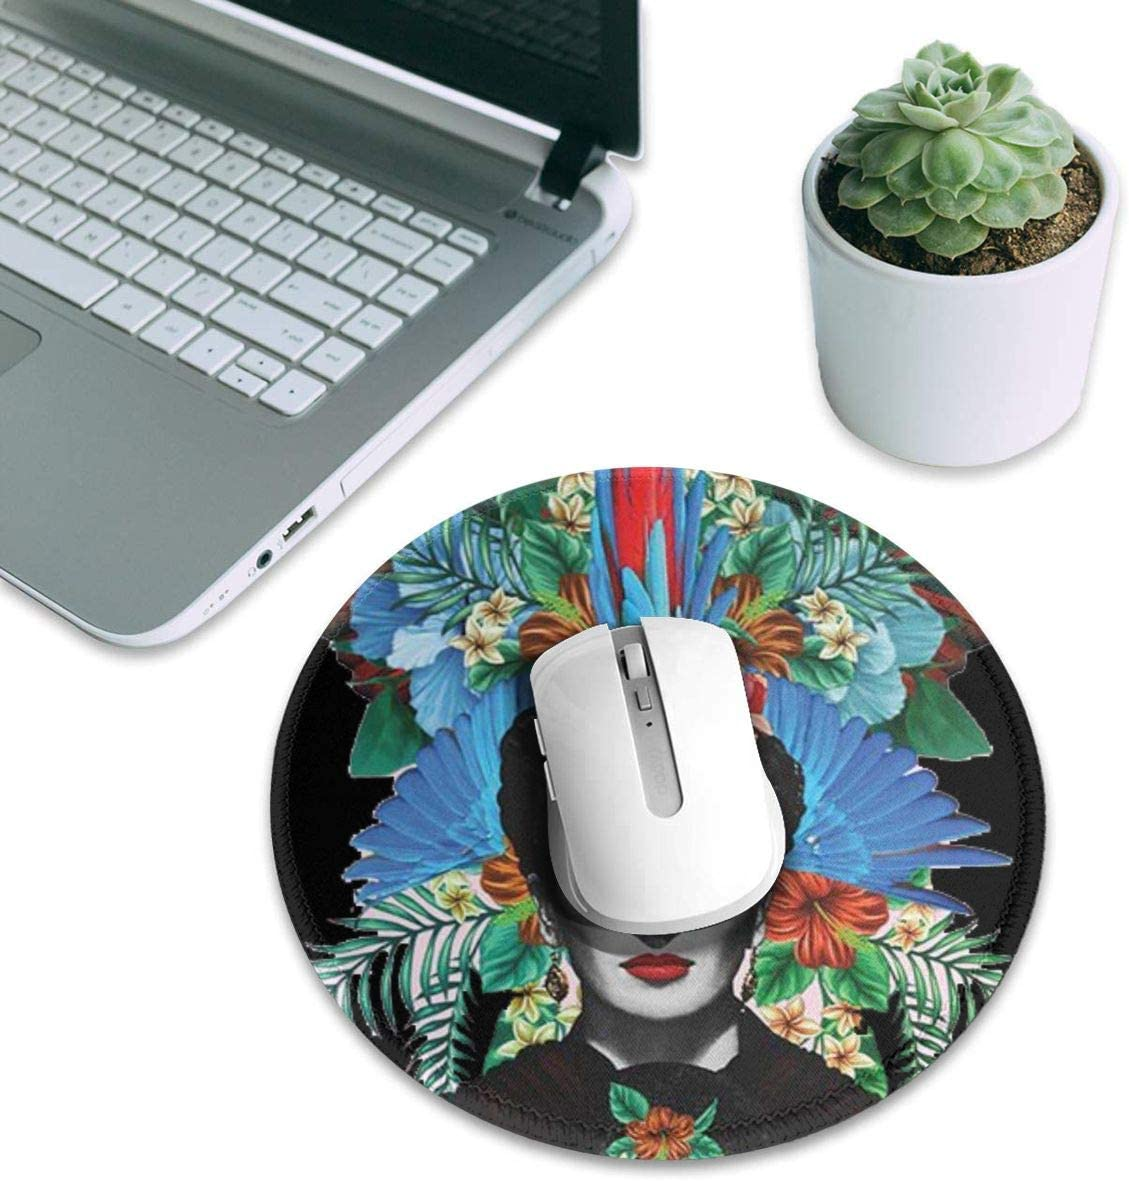 Tela Frida Kahlo Estampado Funny Mouse Pad with Stitched Edges Non-Slip Rubber Base Desk Mat Mousepad Gaming Mouse Pads for Laptop Computer /& PC Work Home